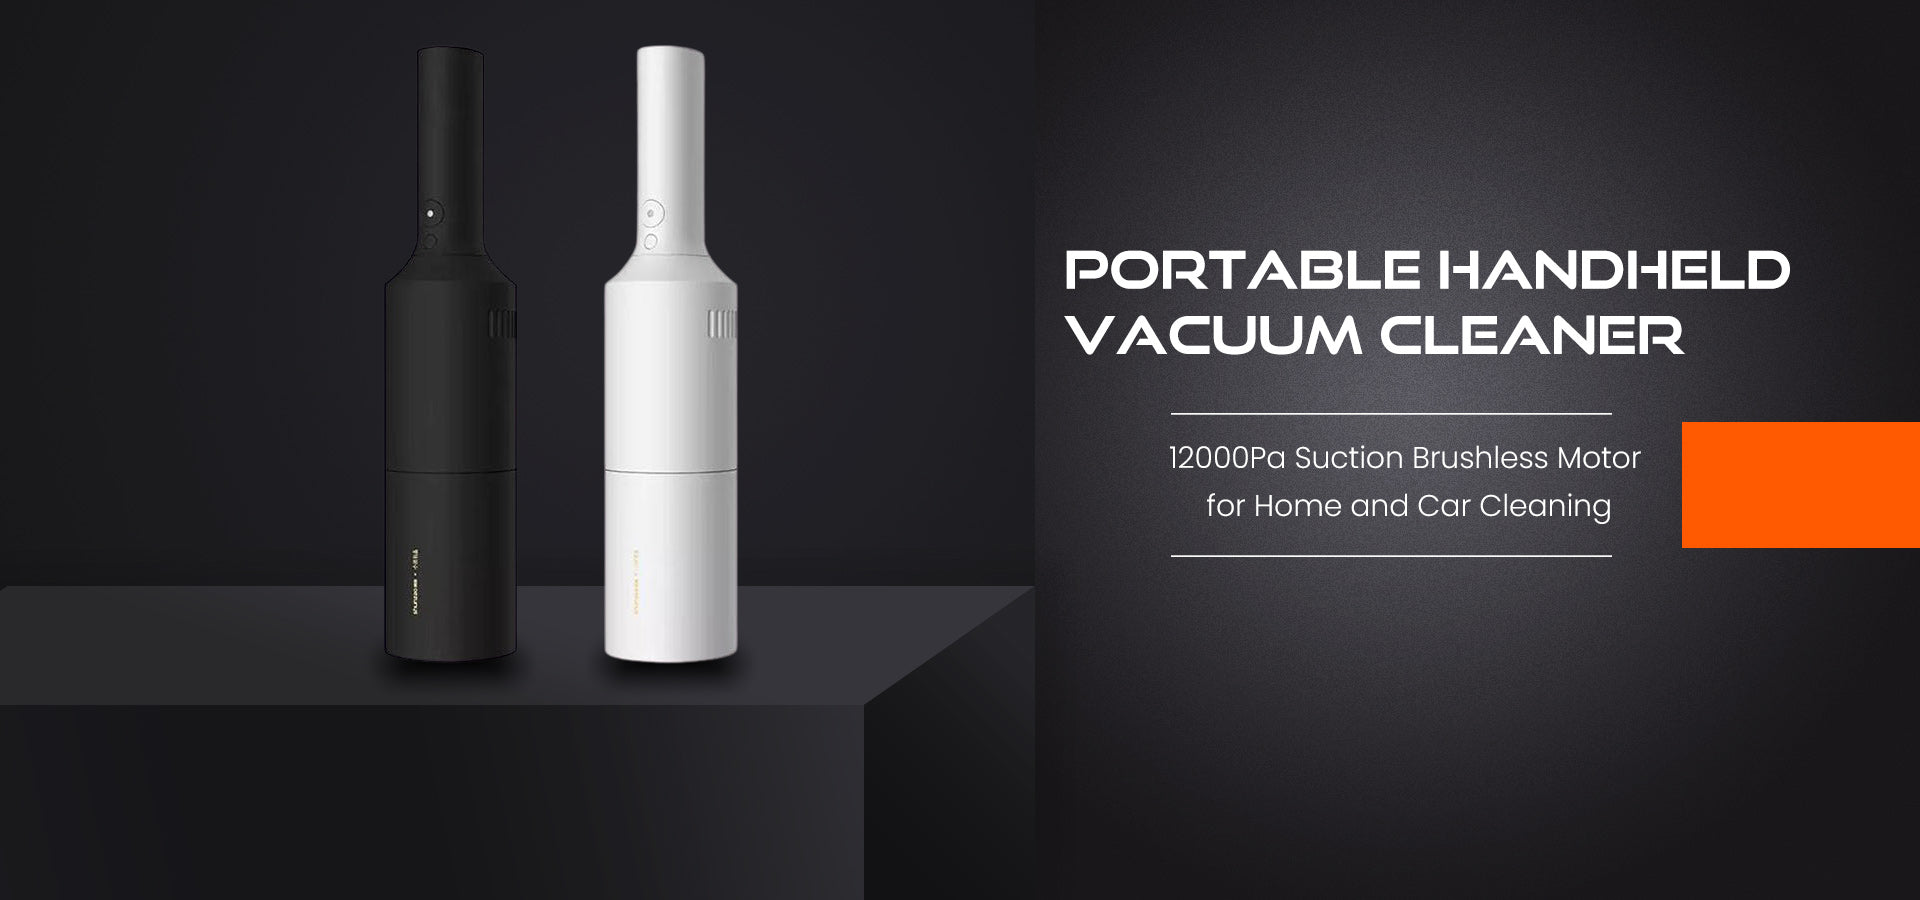 Wireless Multi-purpose Vacuum Cleaner Protable 12000Pa Suction Brushless Motor For Home Car Cleaning Tools.